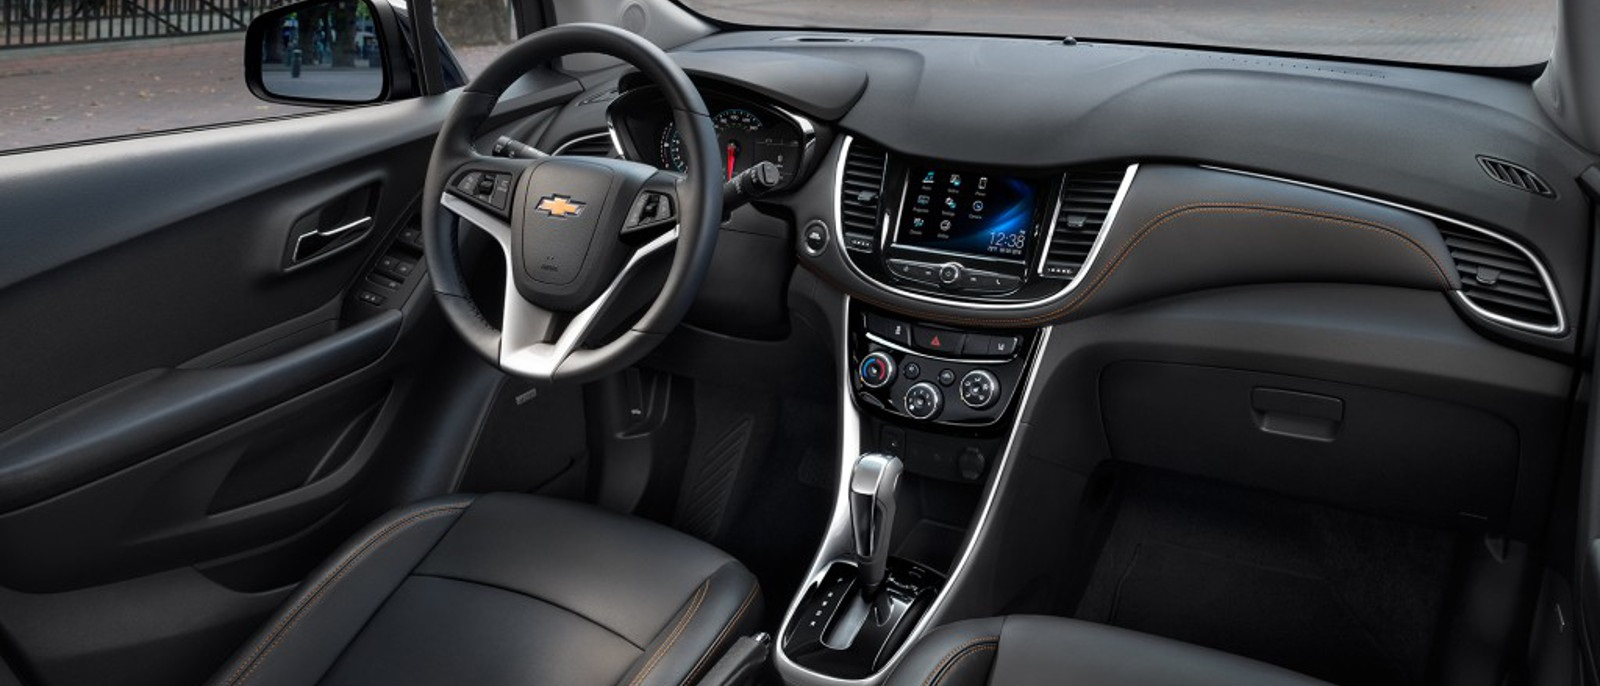 The 2017 chevrolet trax returns with all new tech and styling 2017 chevrolet trax sciox Image collections